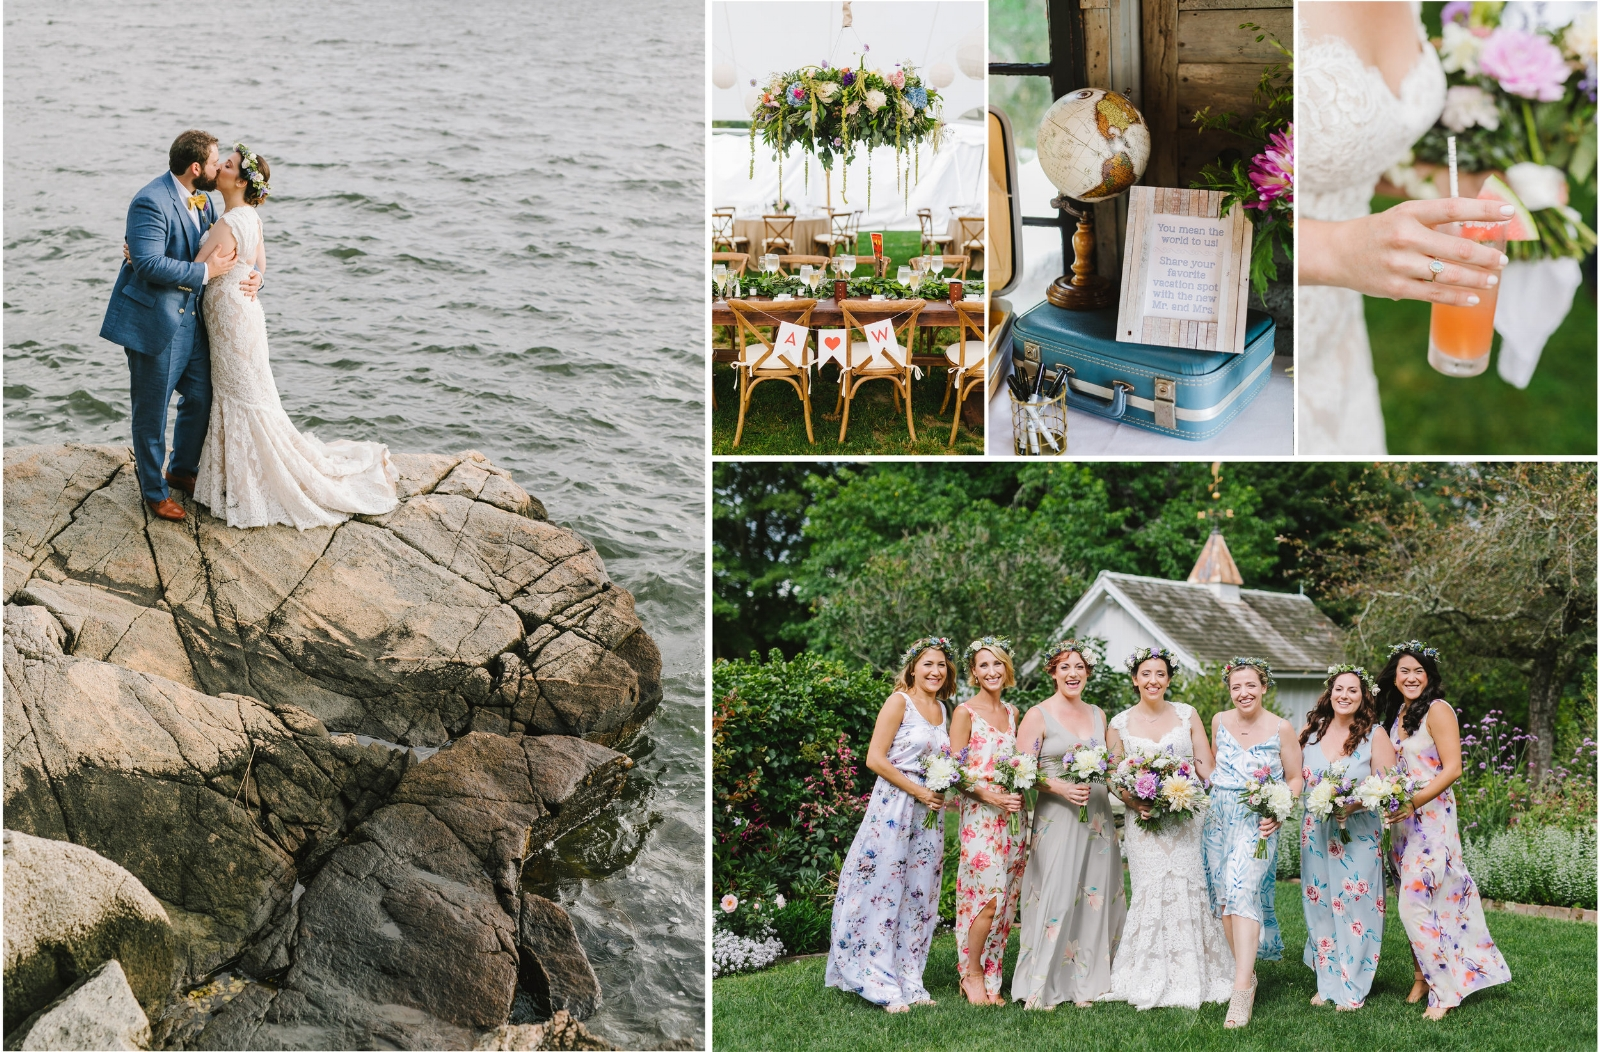 Andy + Wes - Romantic seaside wedding at Mount Hope Farm, Bristol, RI